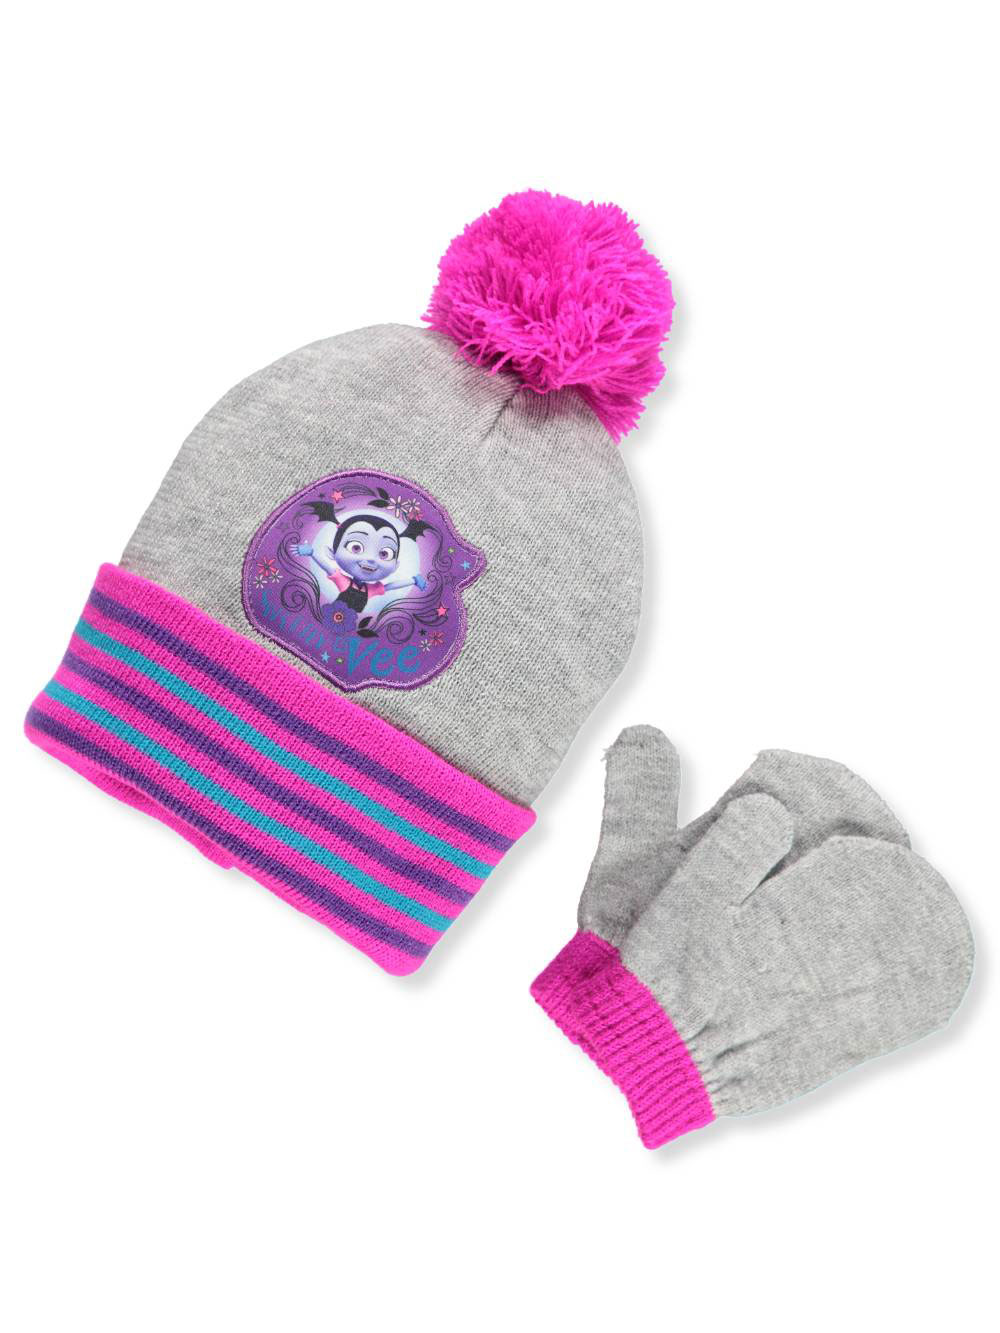 Disney Vampirina Girls' Beanie & Mittens Set (Toddler One Size)